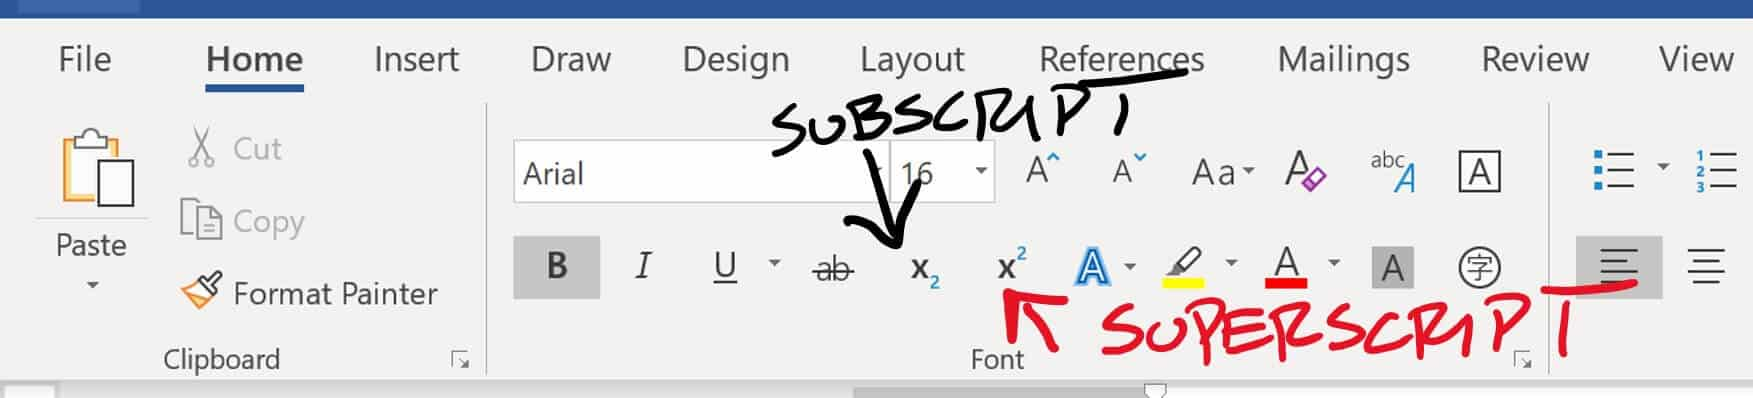 Superscript and subscript commands in Word on the home tab